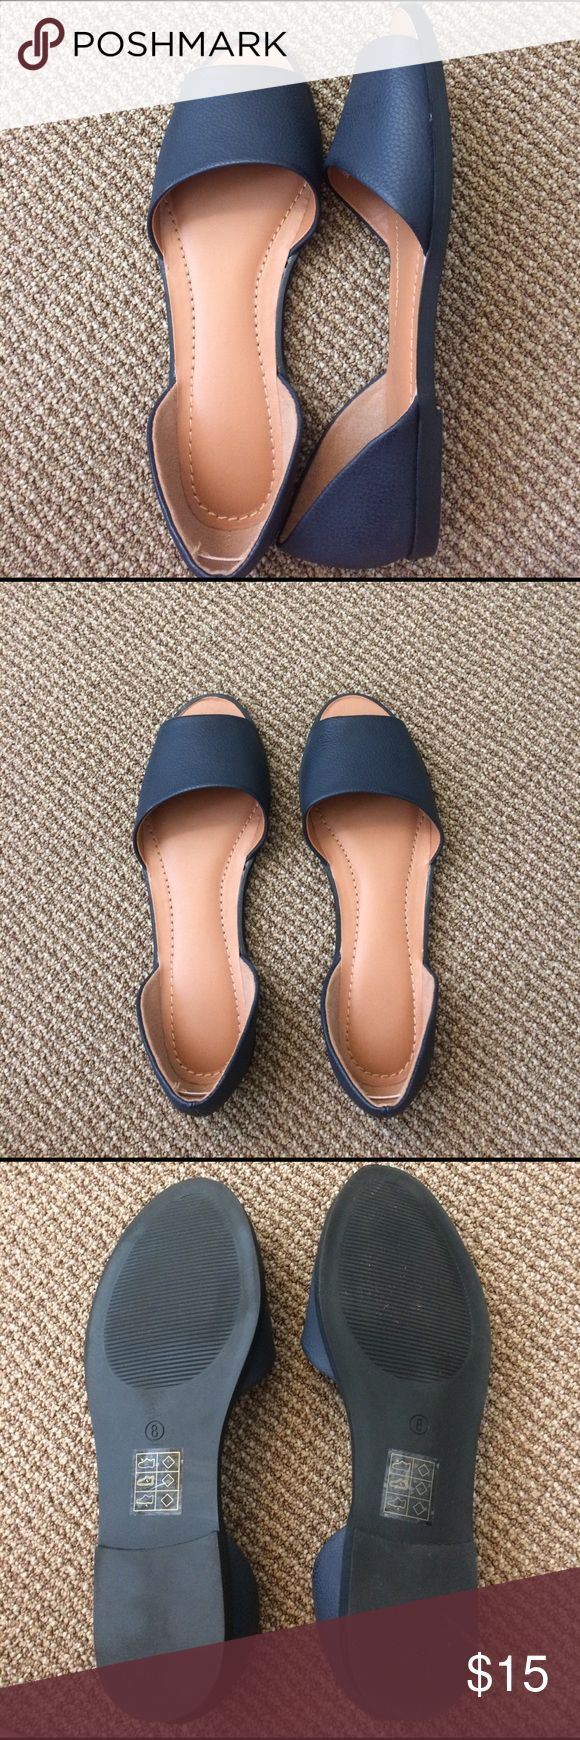 Navy flat sandals from Urban Outfitters Navy open toe sandals! Worn once, minimal signs of wear! Urban Outfitters Shoes Sandals